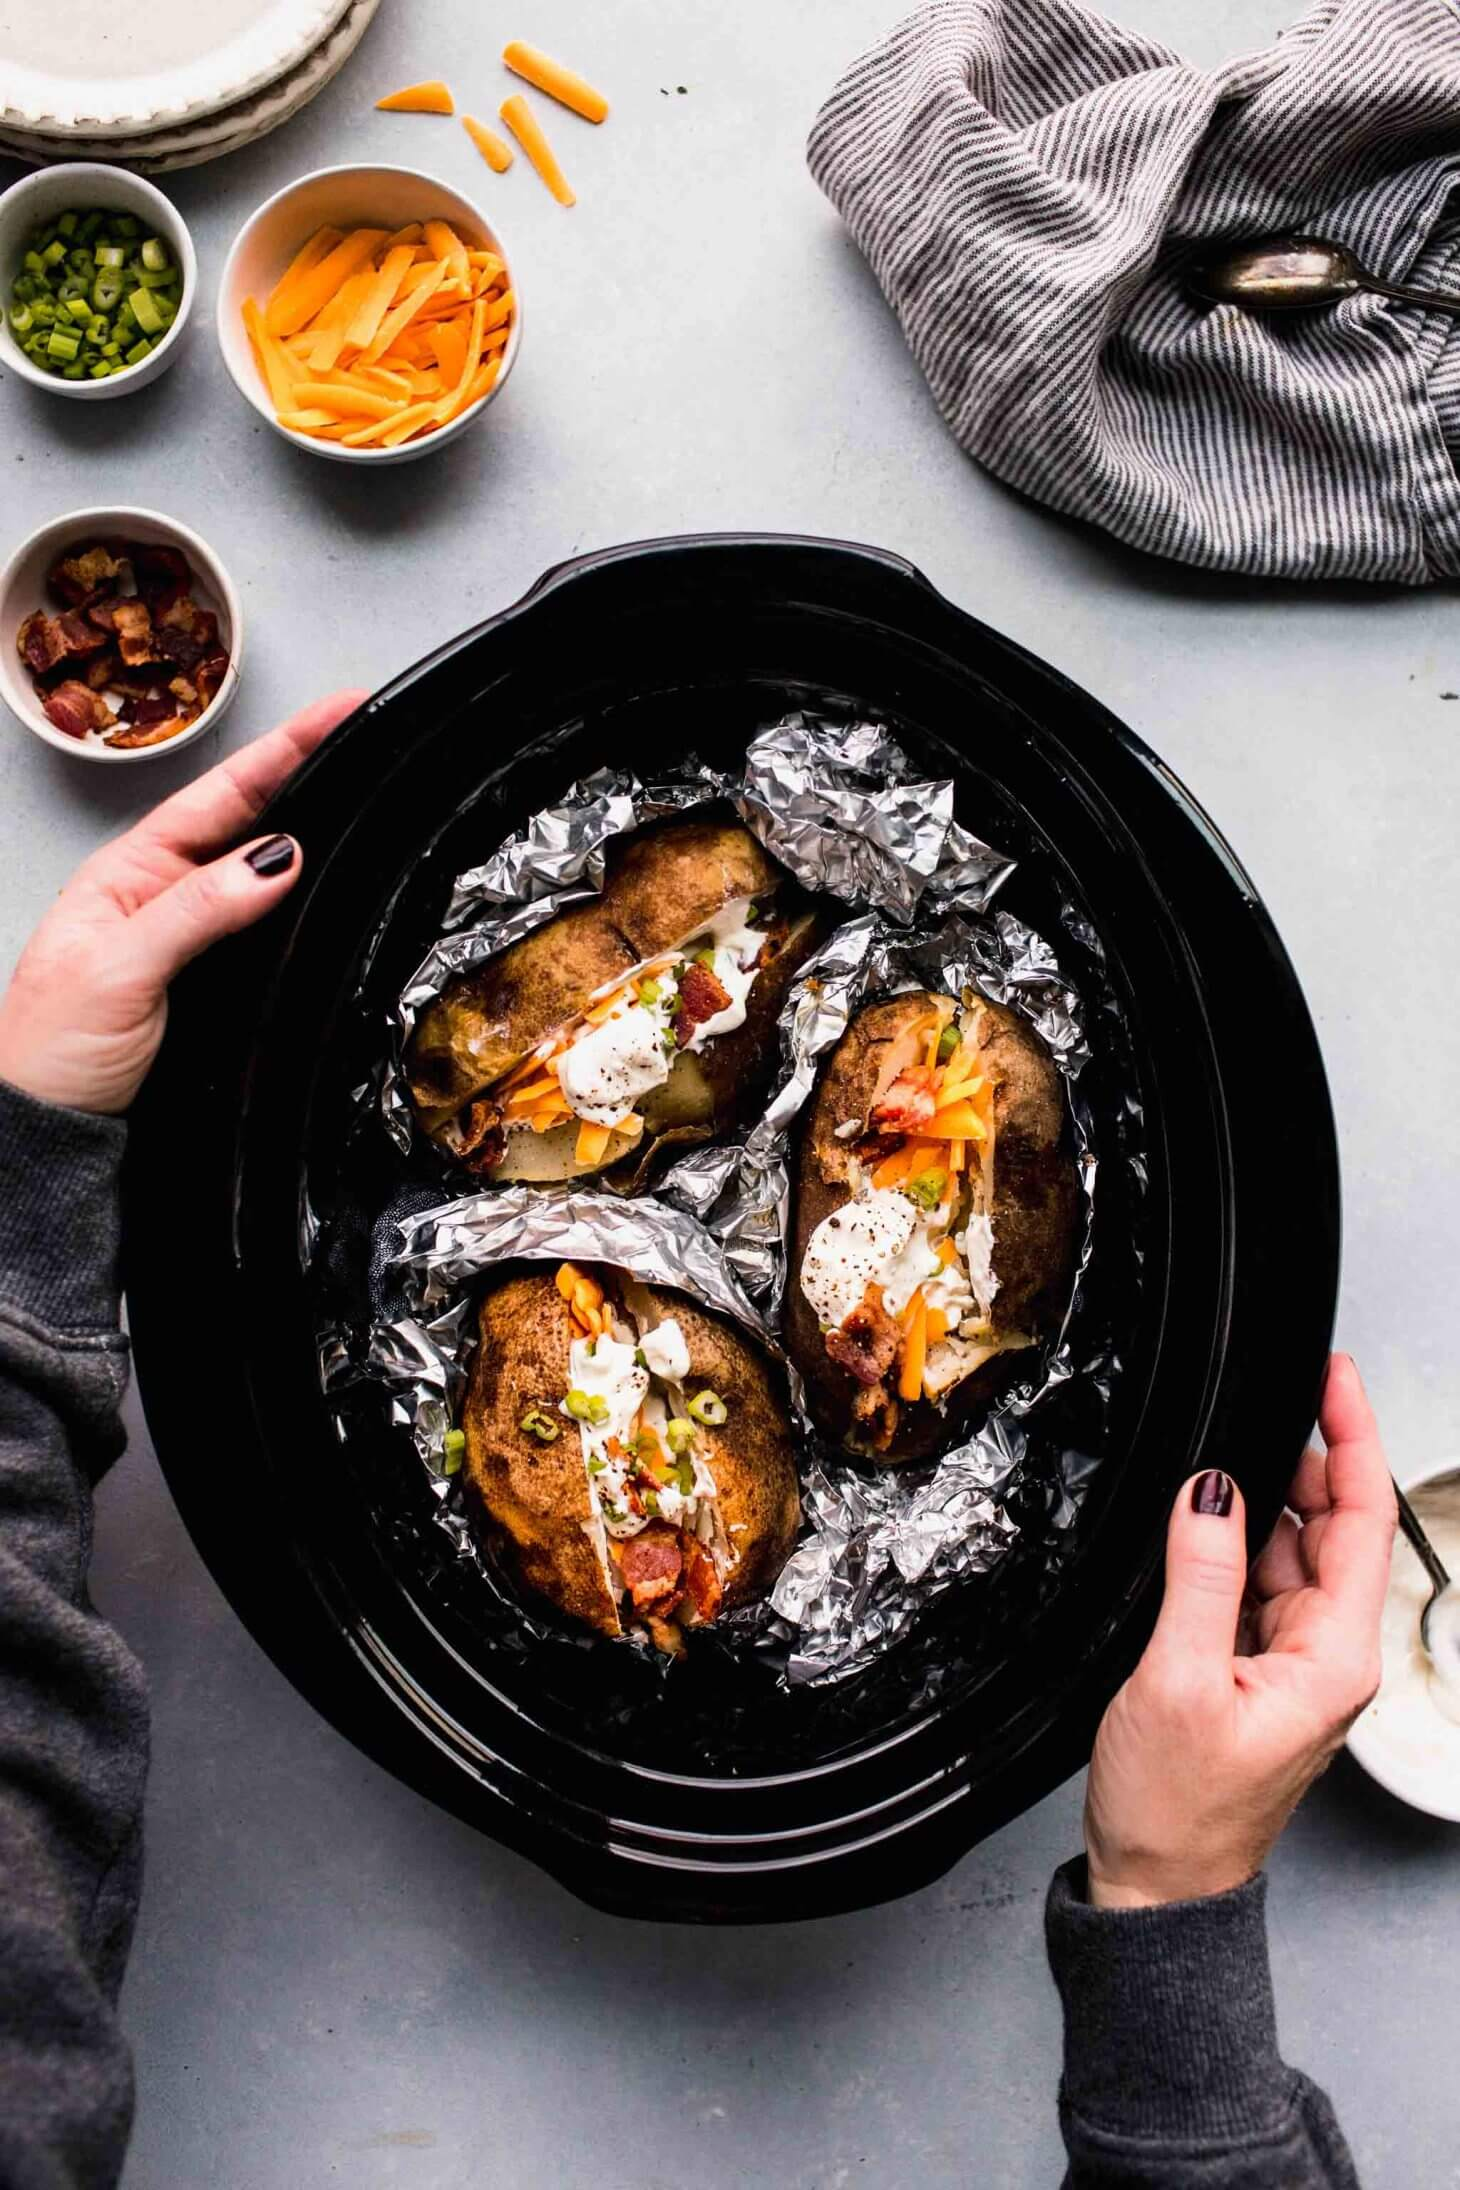 Hands holding slow cooker filled with baked potatoes in foil topped with toppings.